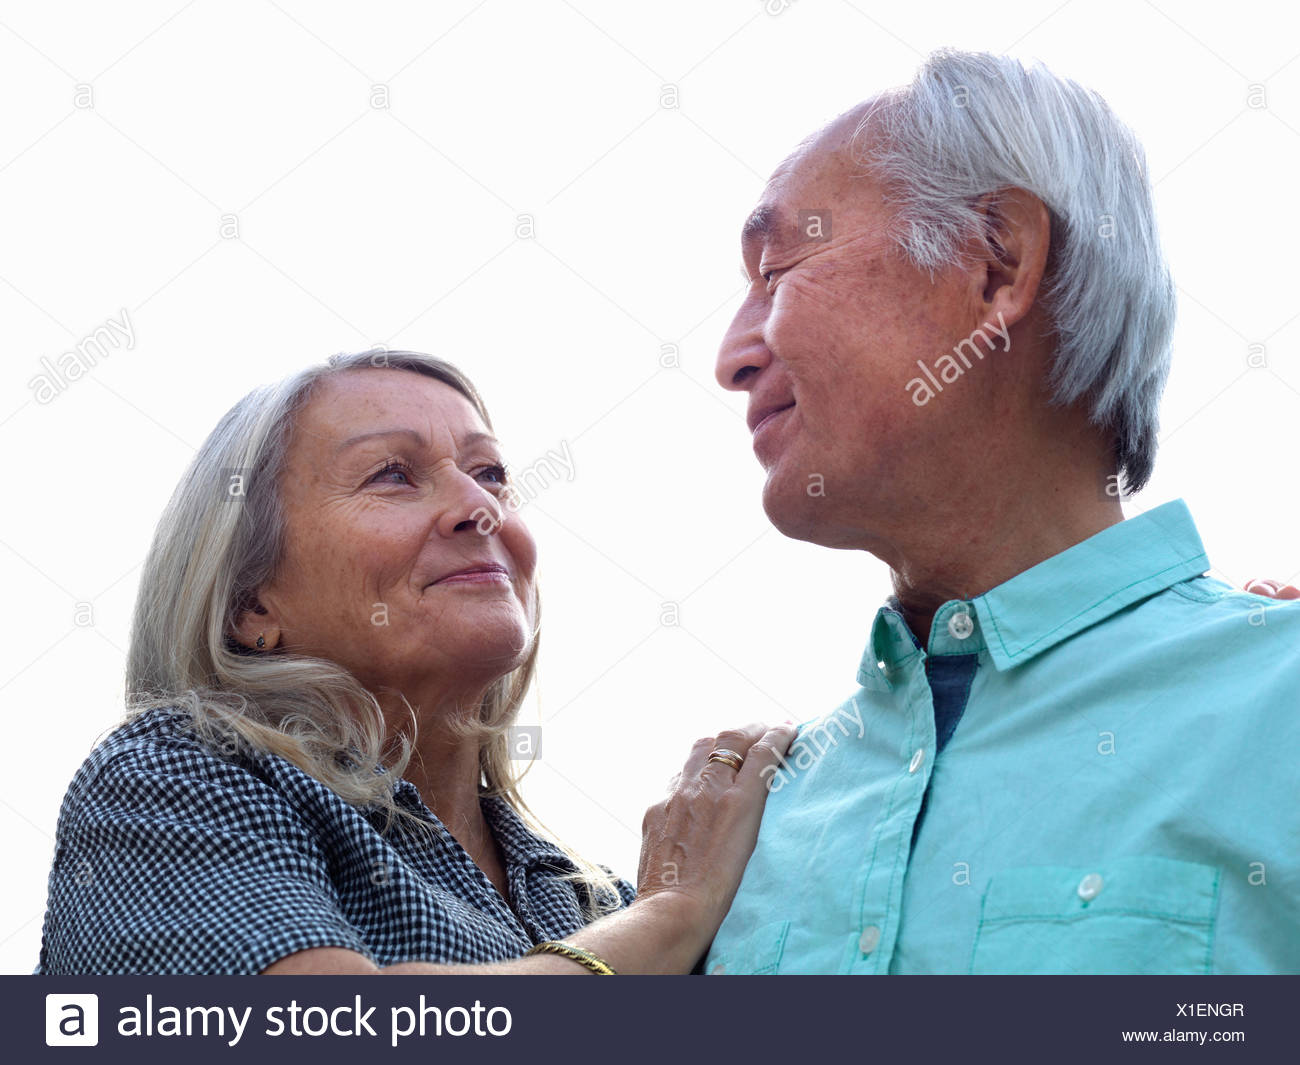 Older couple smiling together - Stock Image